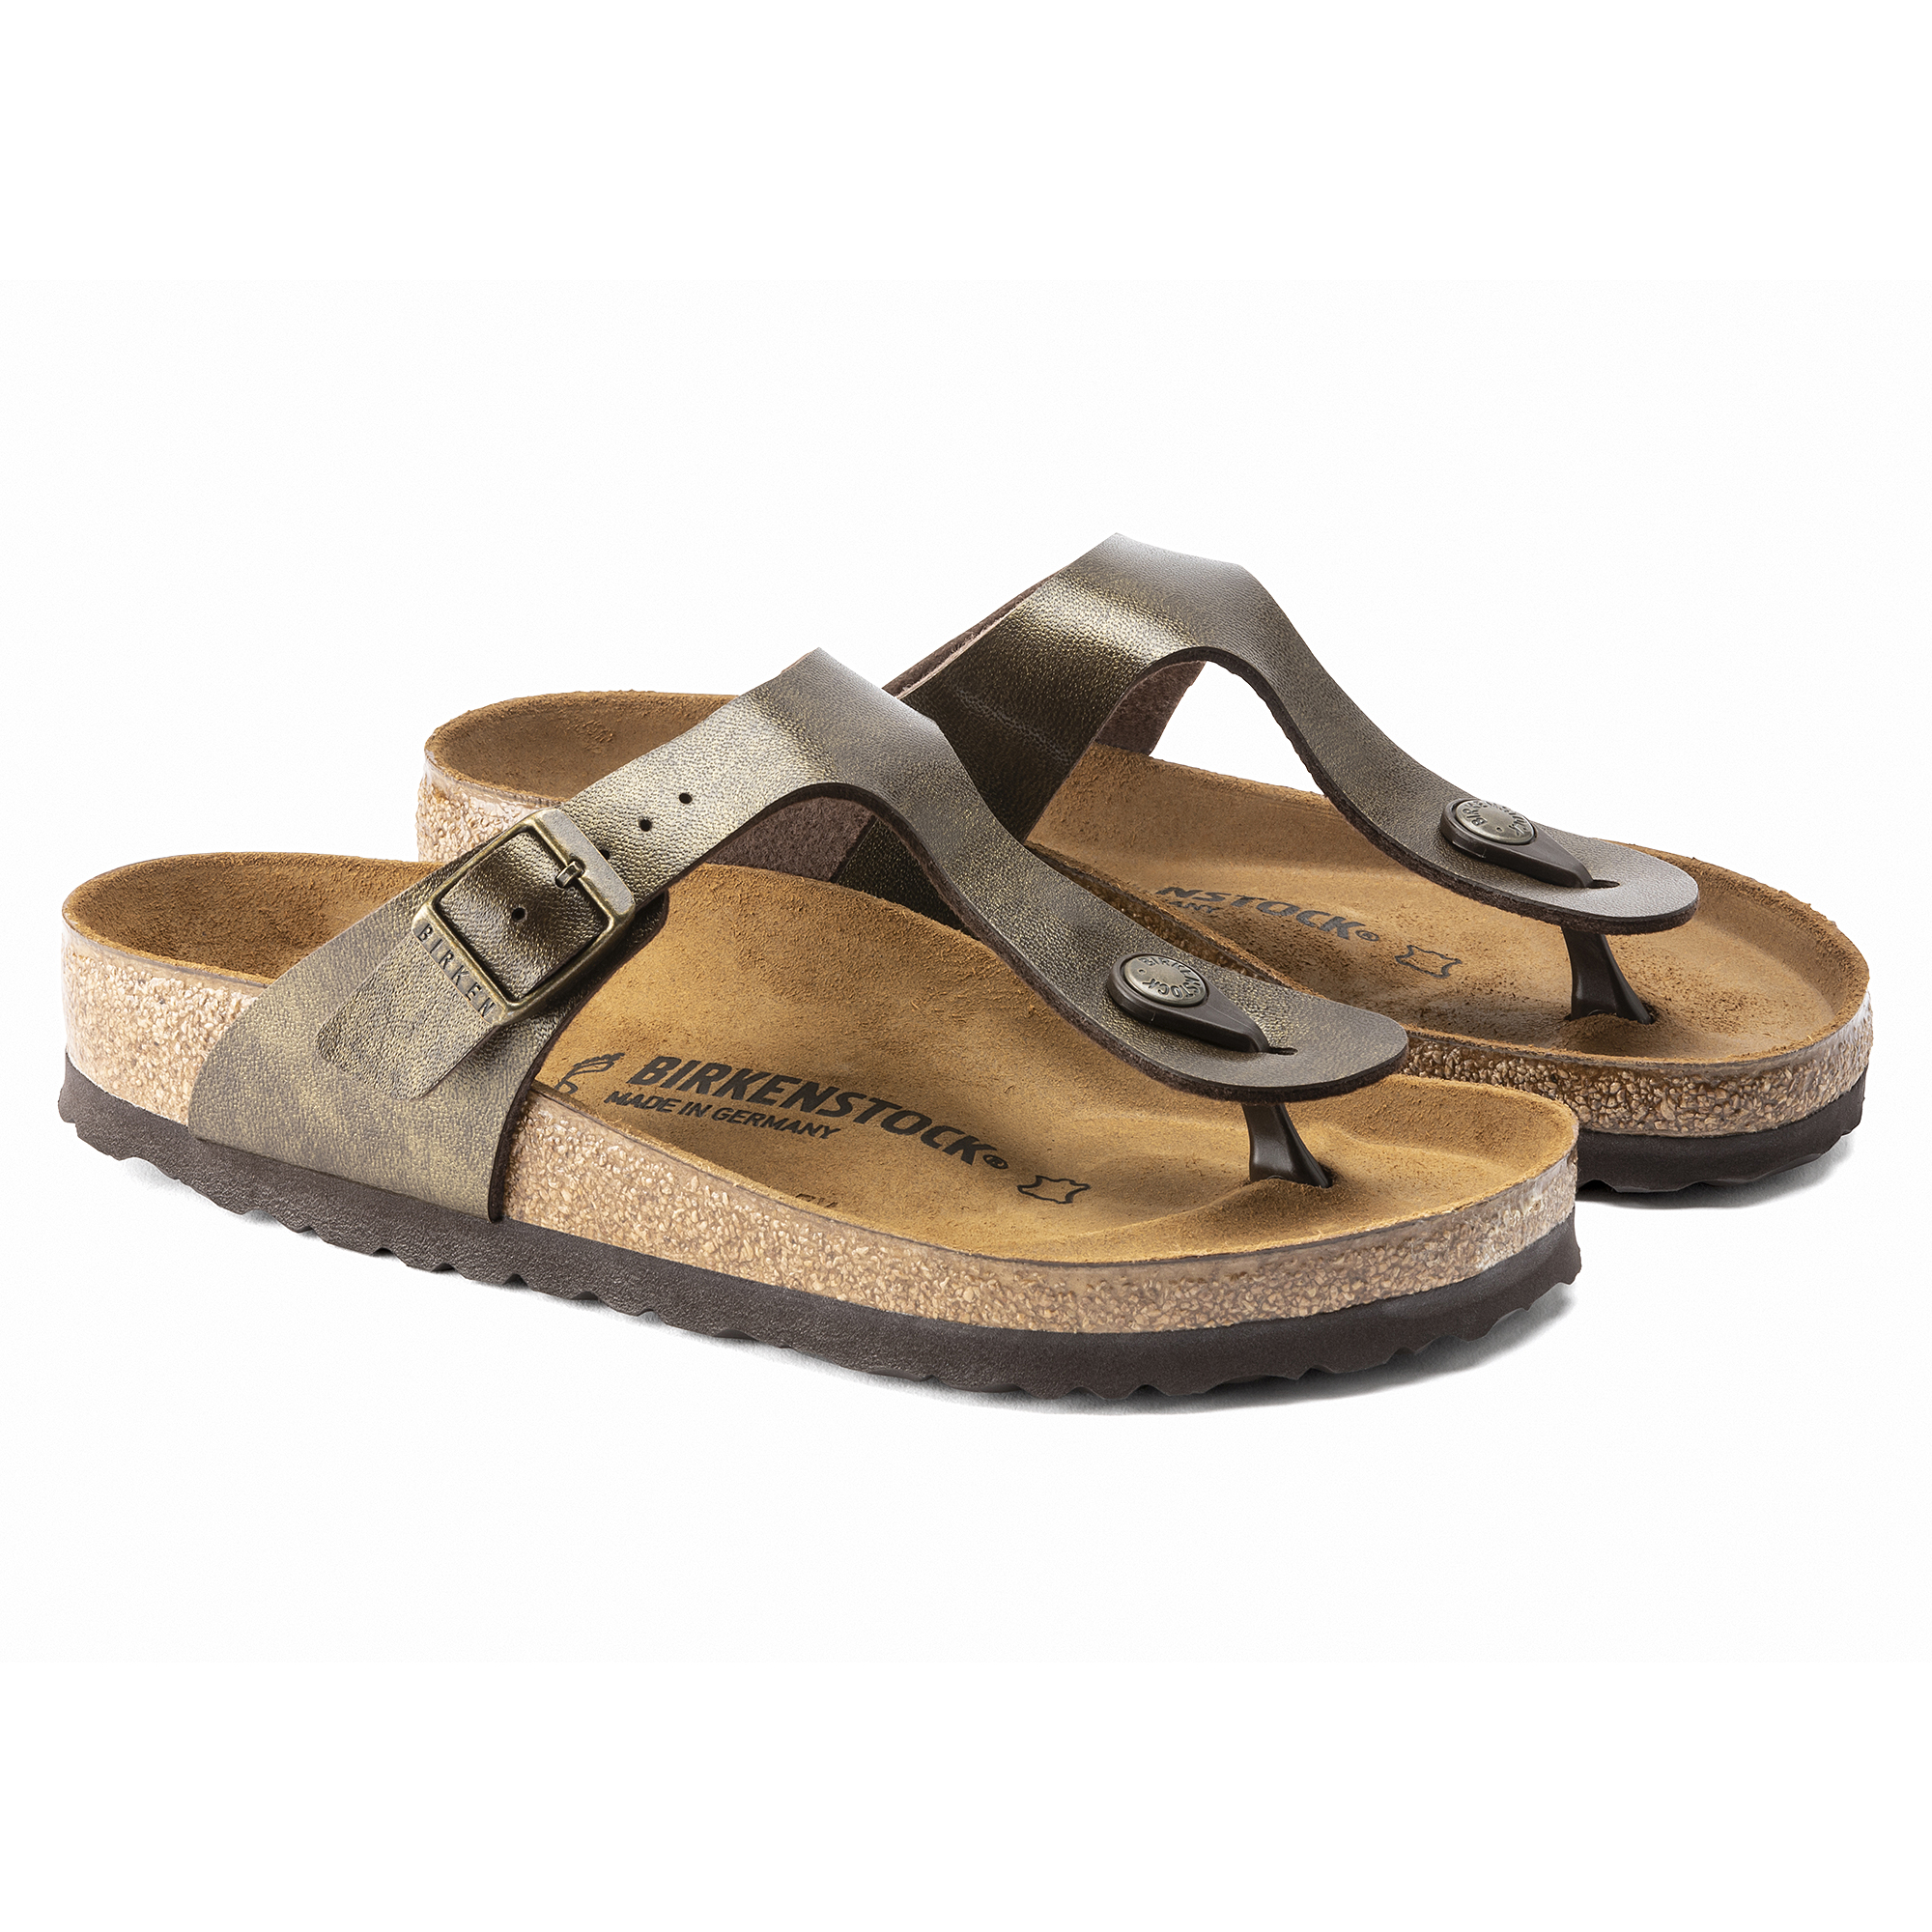 Birkenstock Gizeh Toe Piece Sandal for Women at Birkenstock